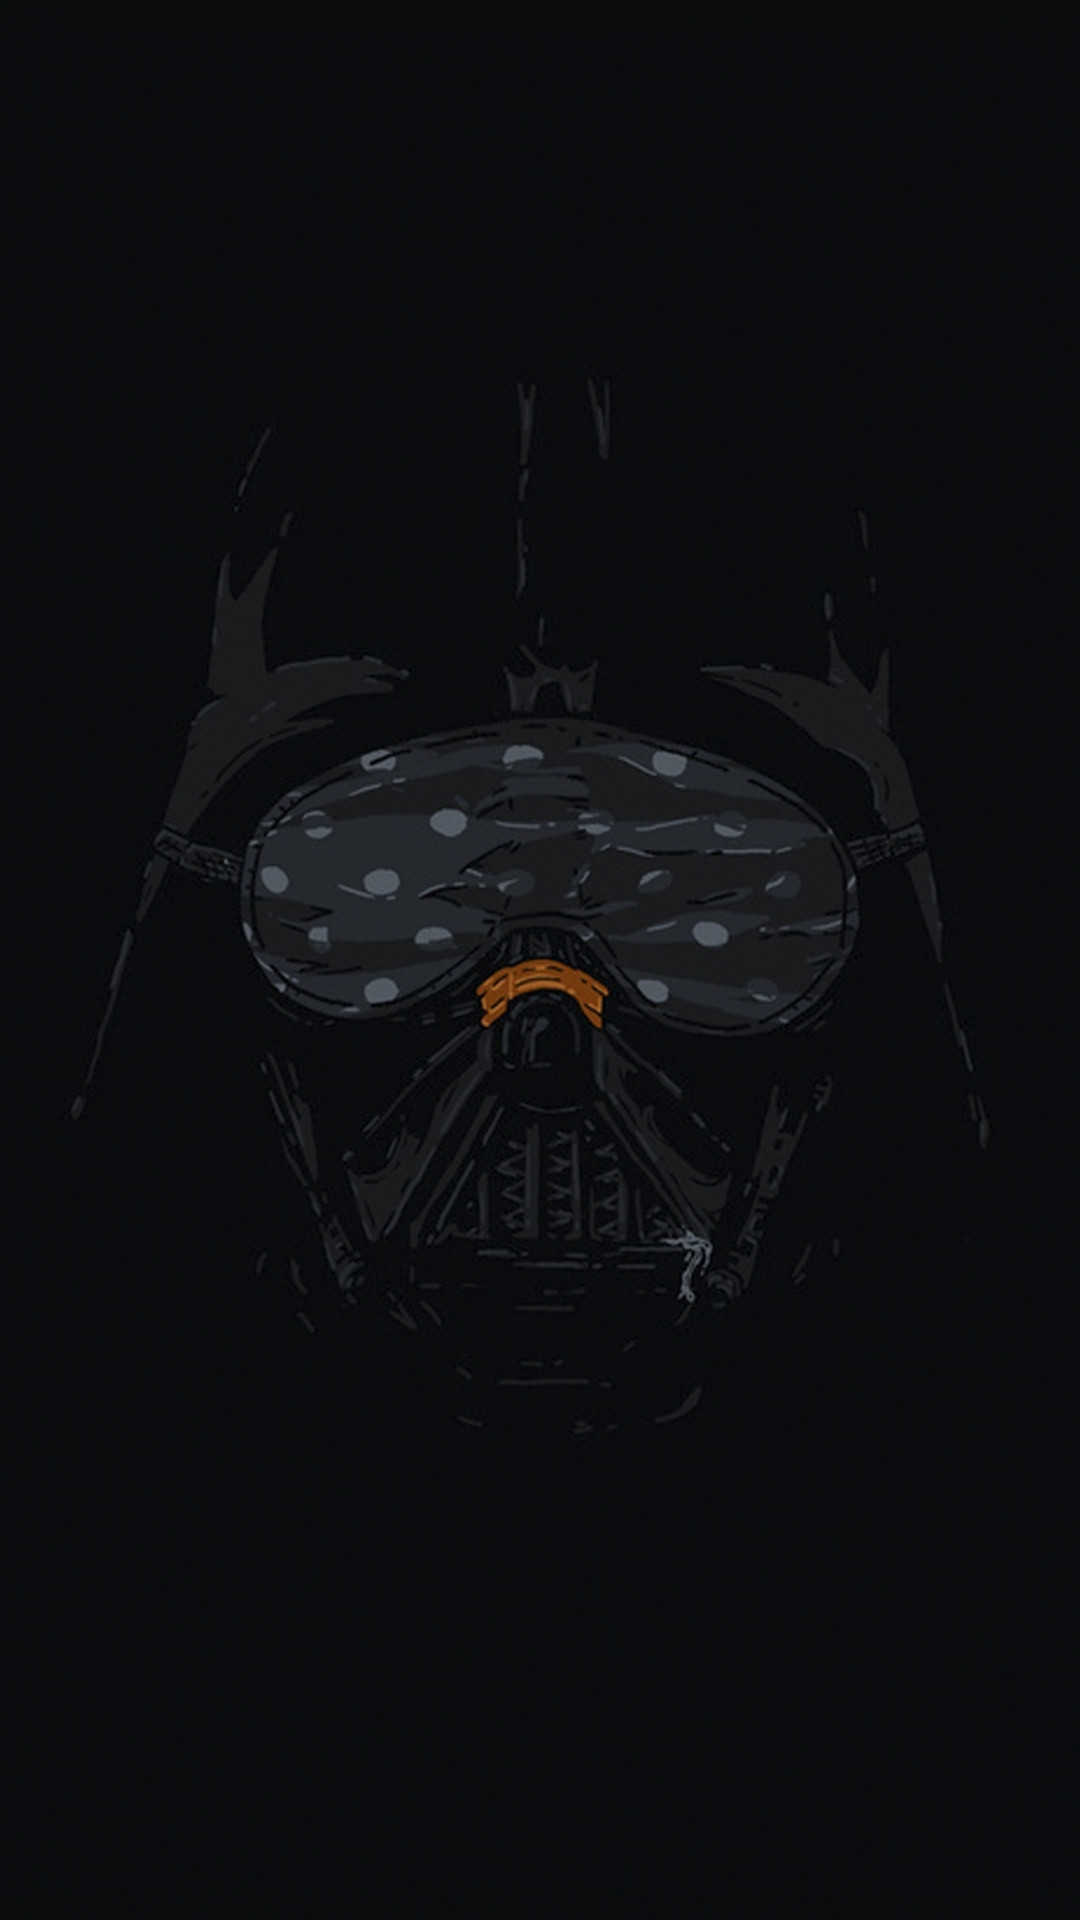 Star Wars 7 Wallpapers 79 Background Pictures